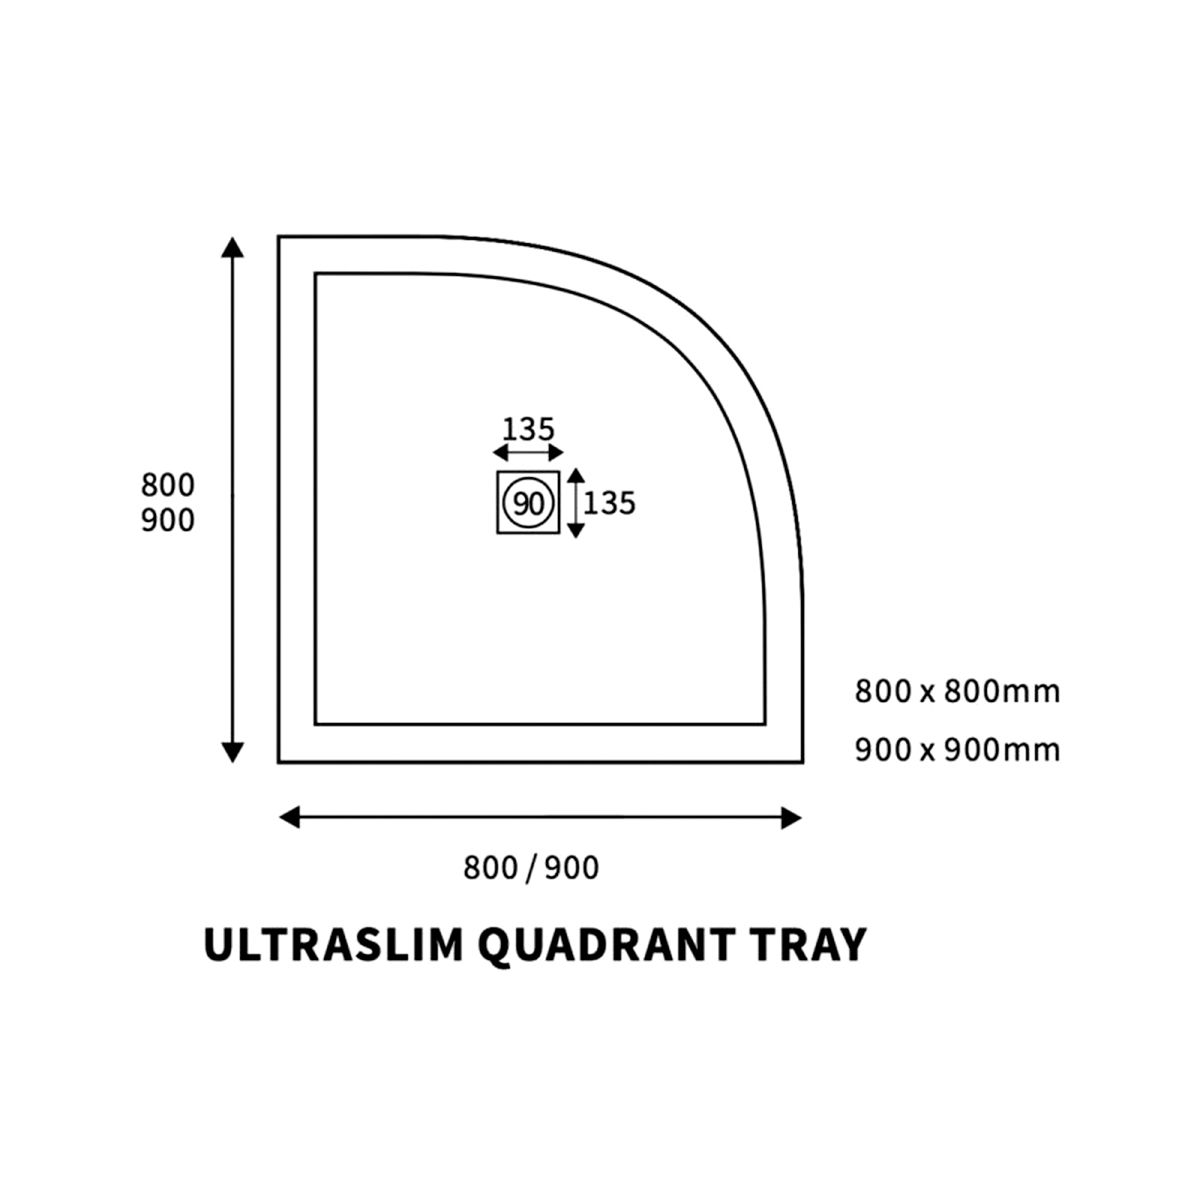 Bathrooms To Love White Quadrant Ultraslim Shower Tray with Waste 800mm x 800mm Line Drawing